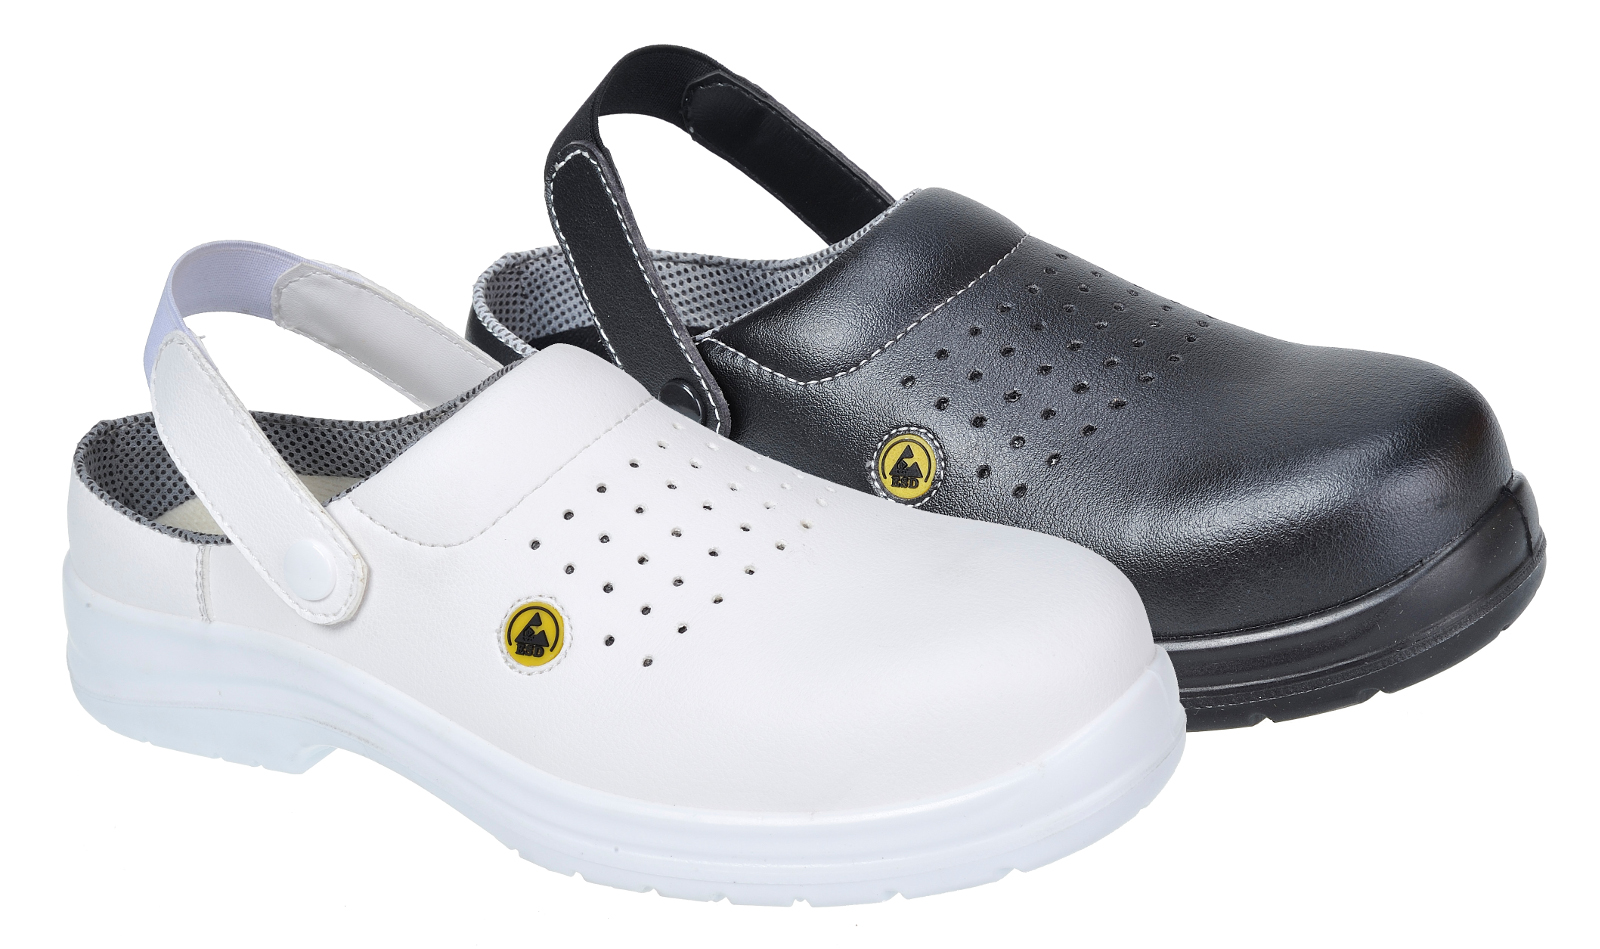 Portwest FC03 ESD Safety Clogs